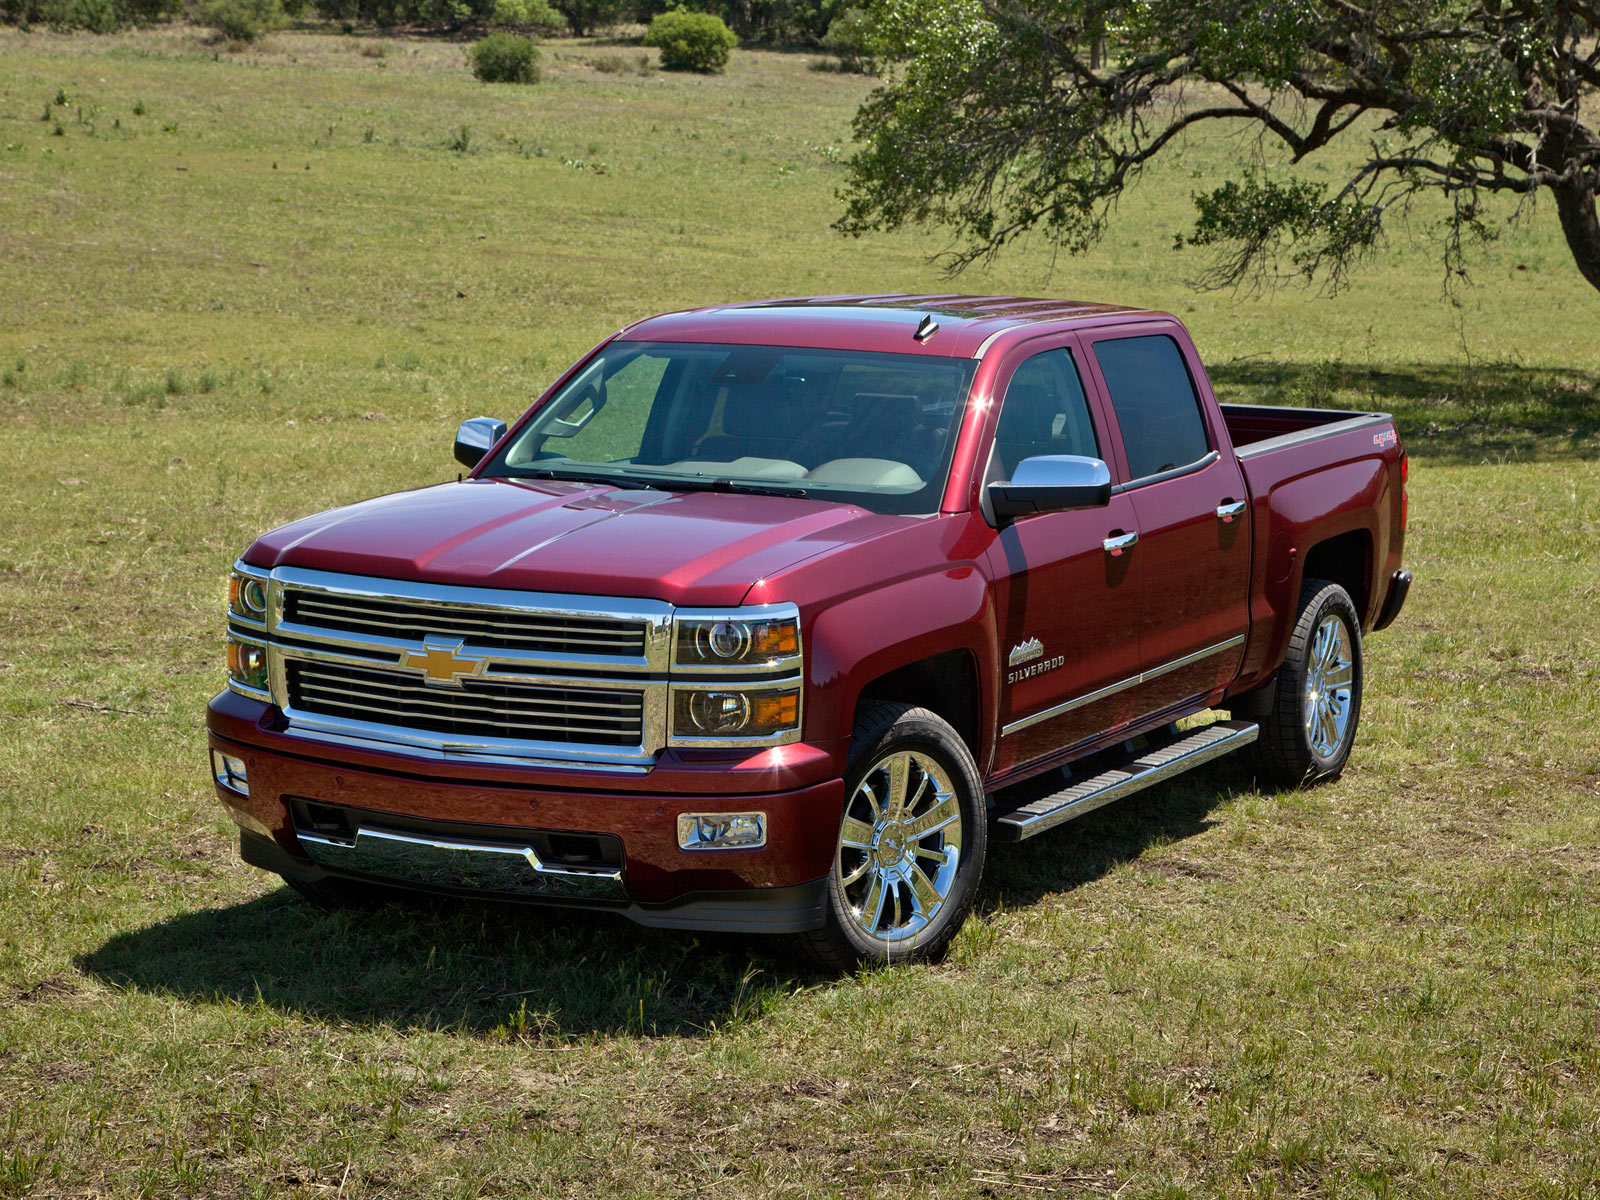 2019 Chevrolet Silverado HD photo - 5